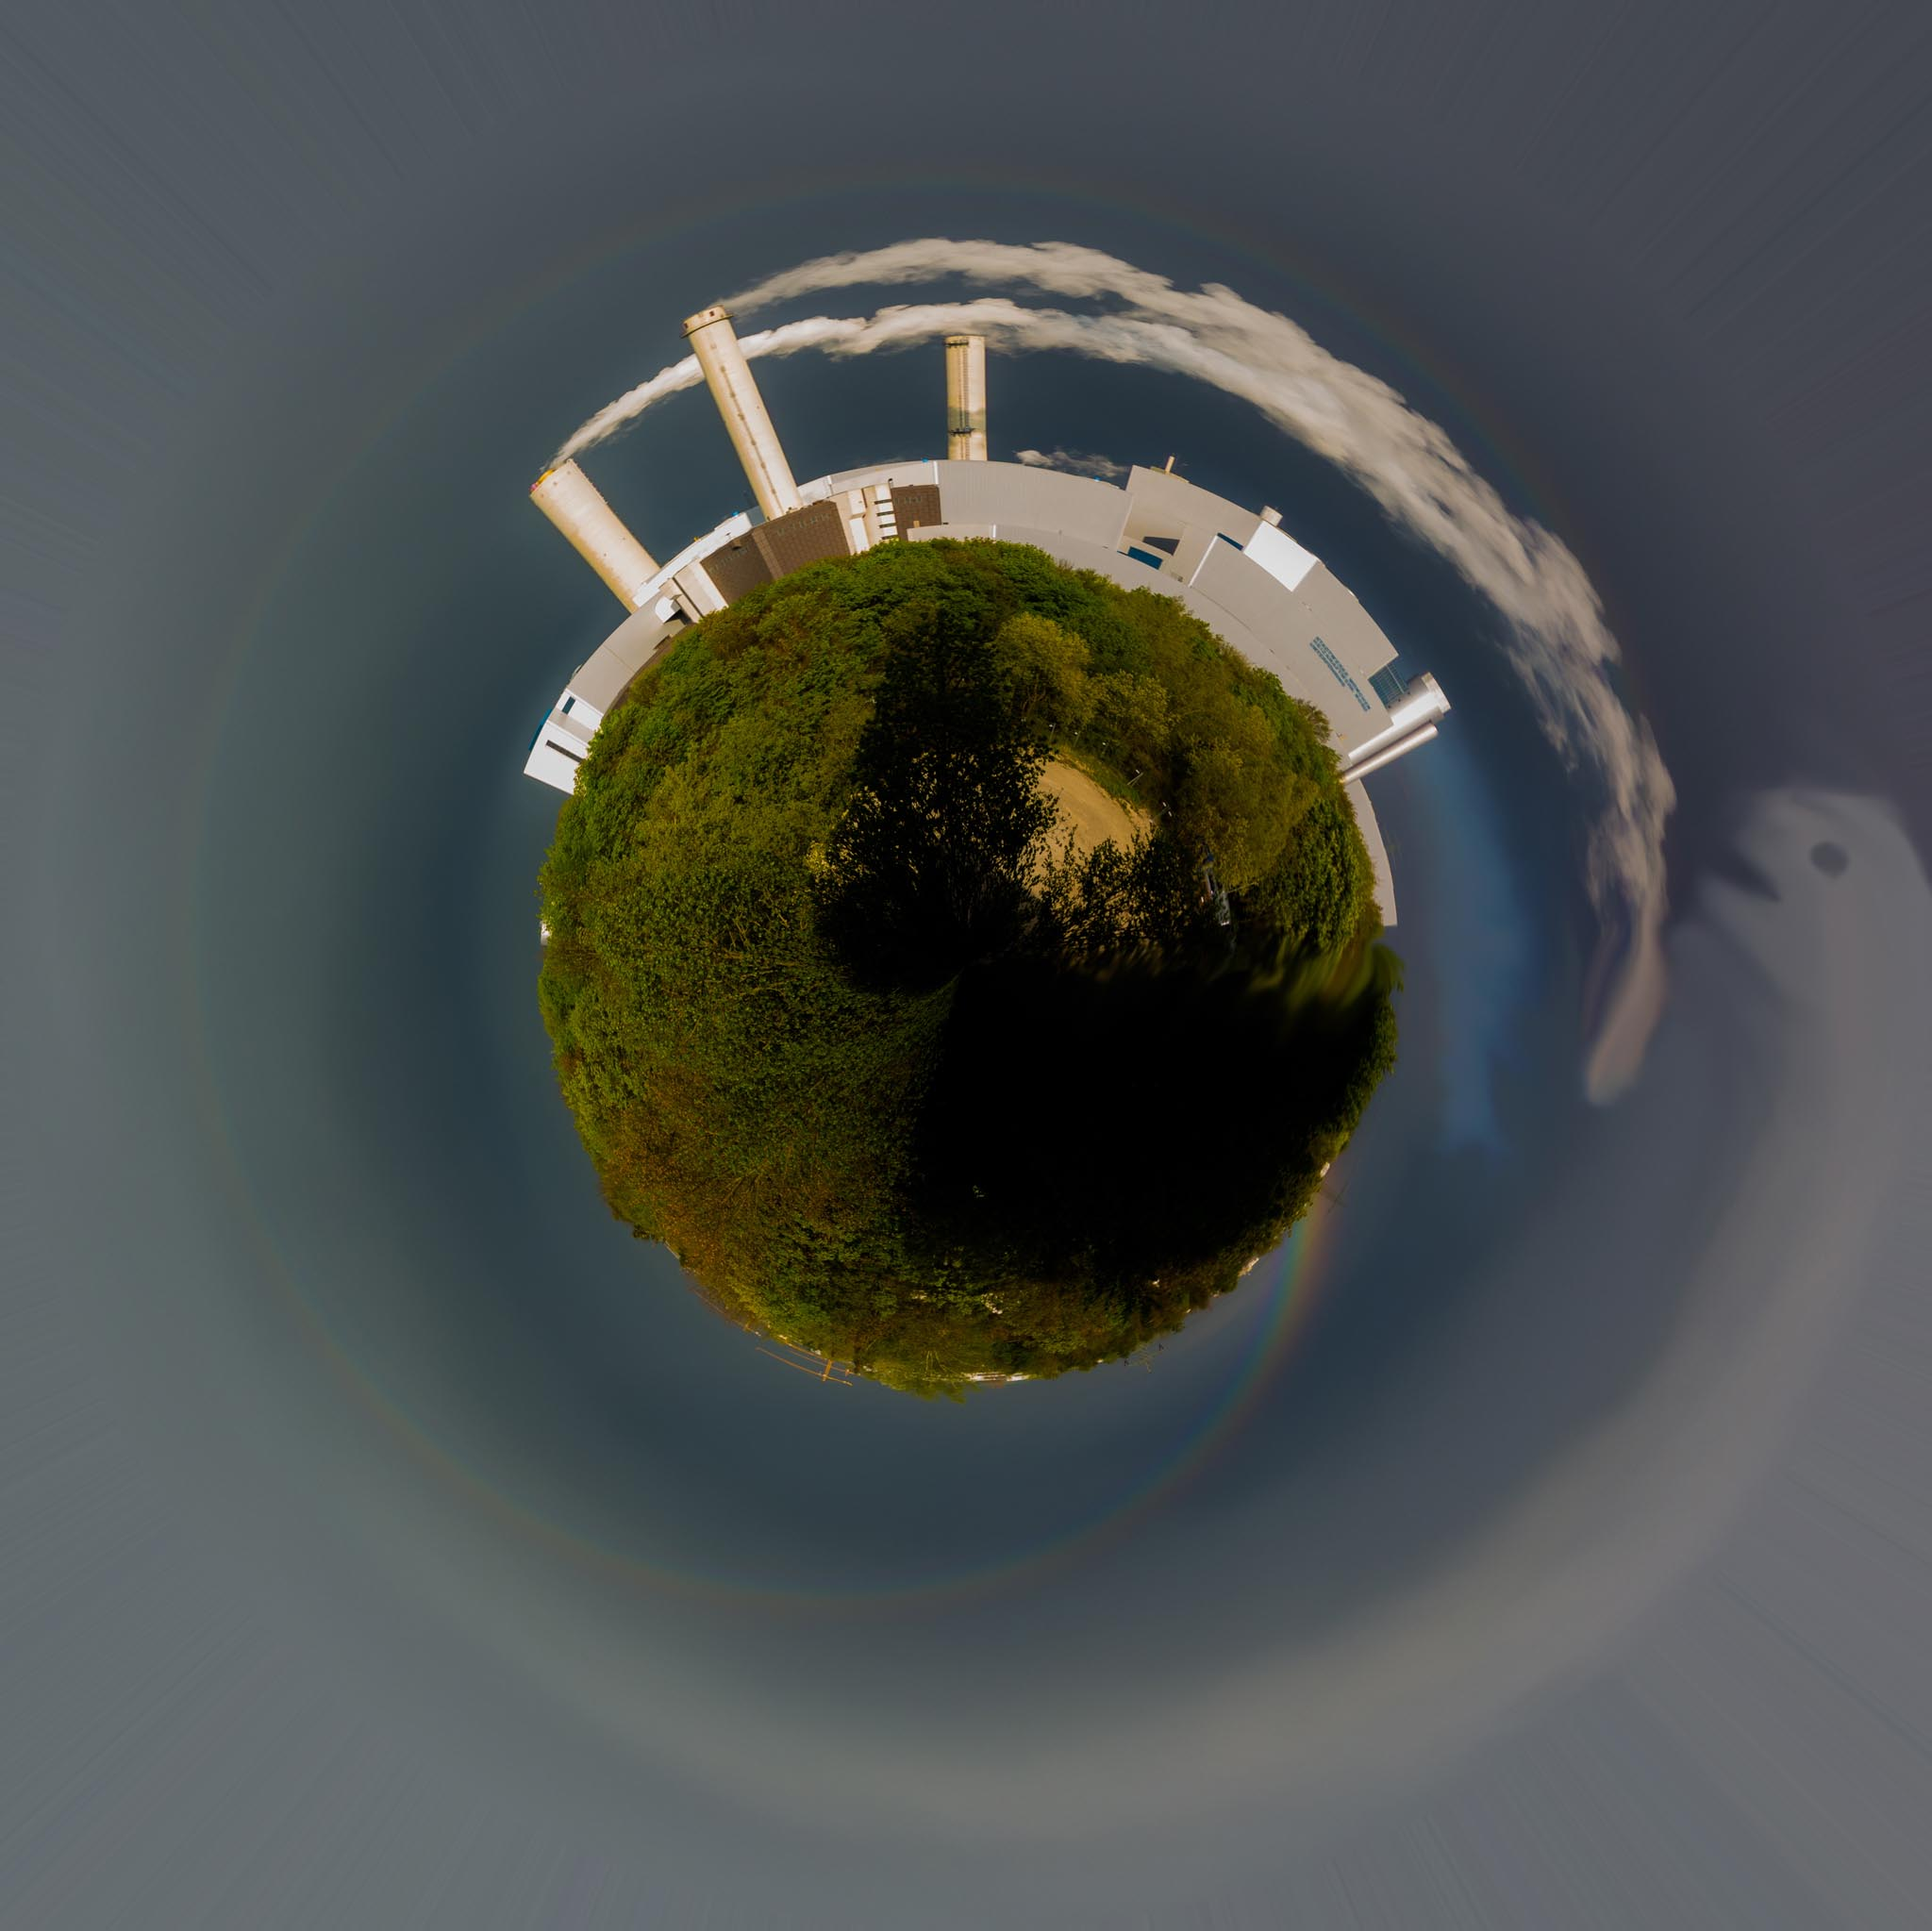 Experimentell Miniplanet HKW Unterföhring (Foto: Andy Ilmberger)